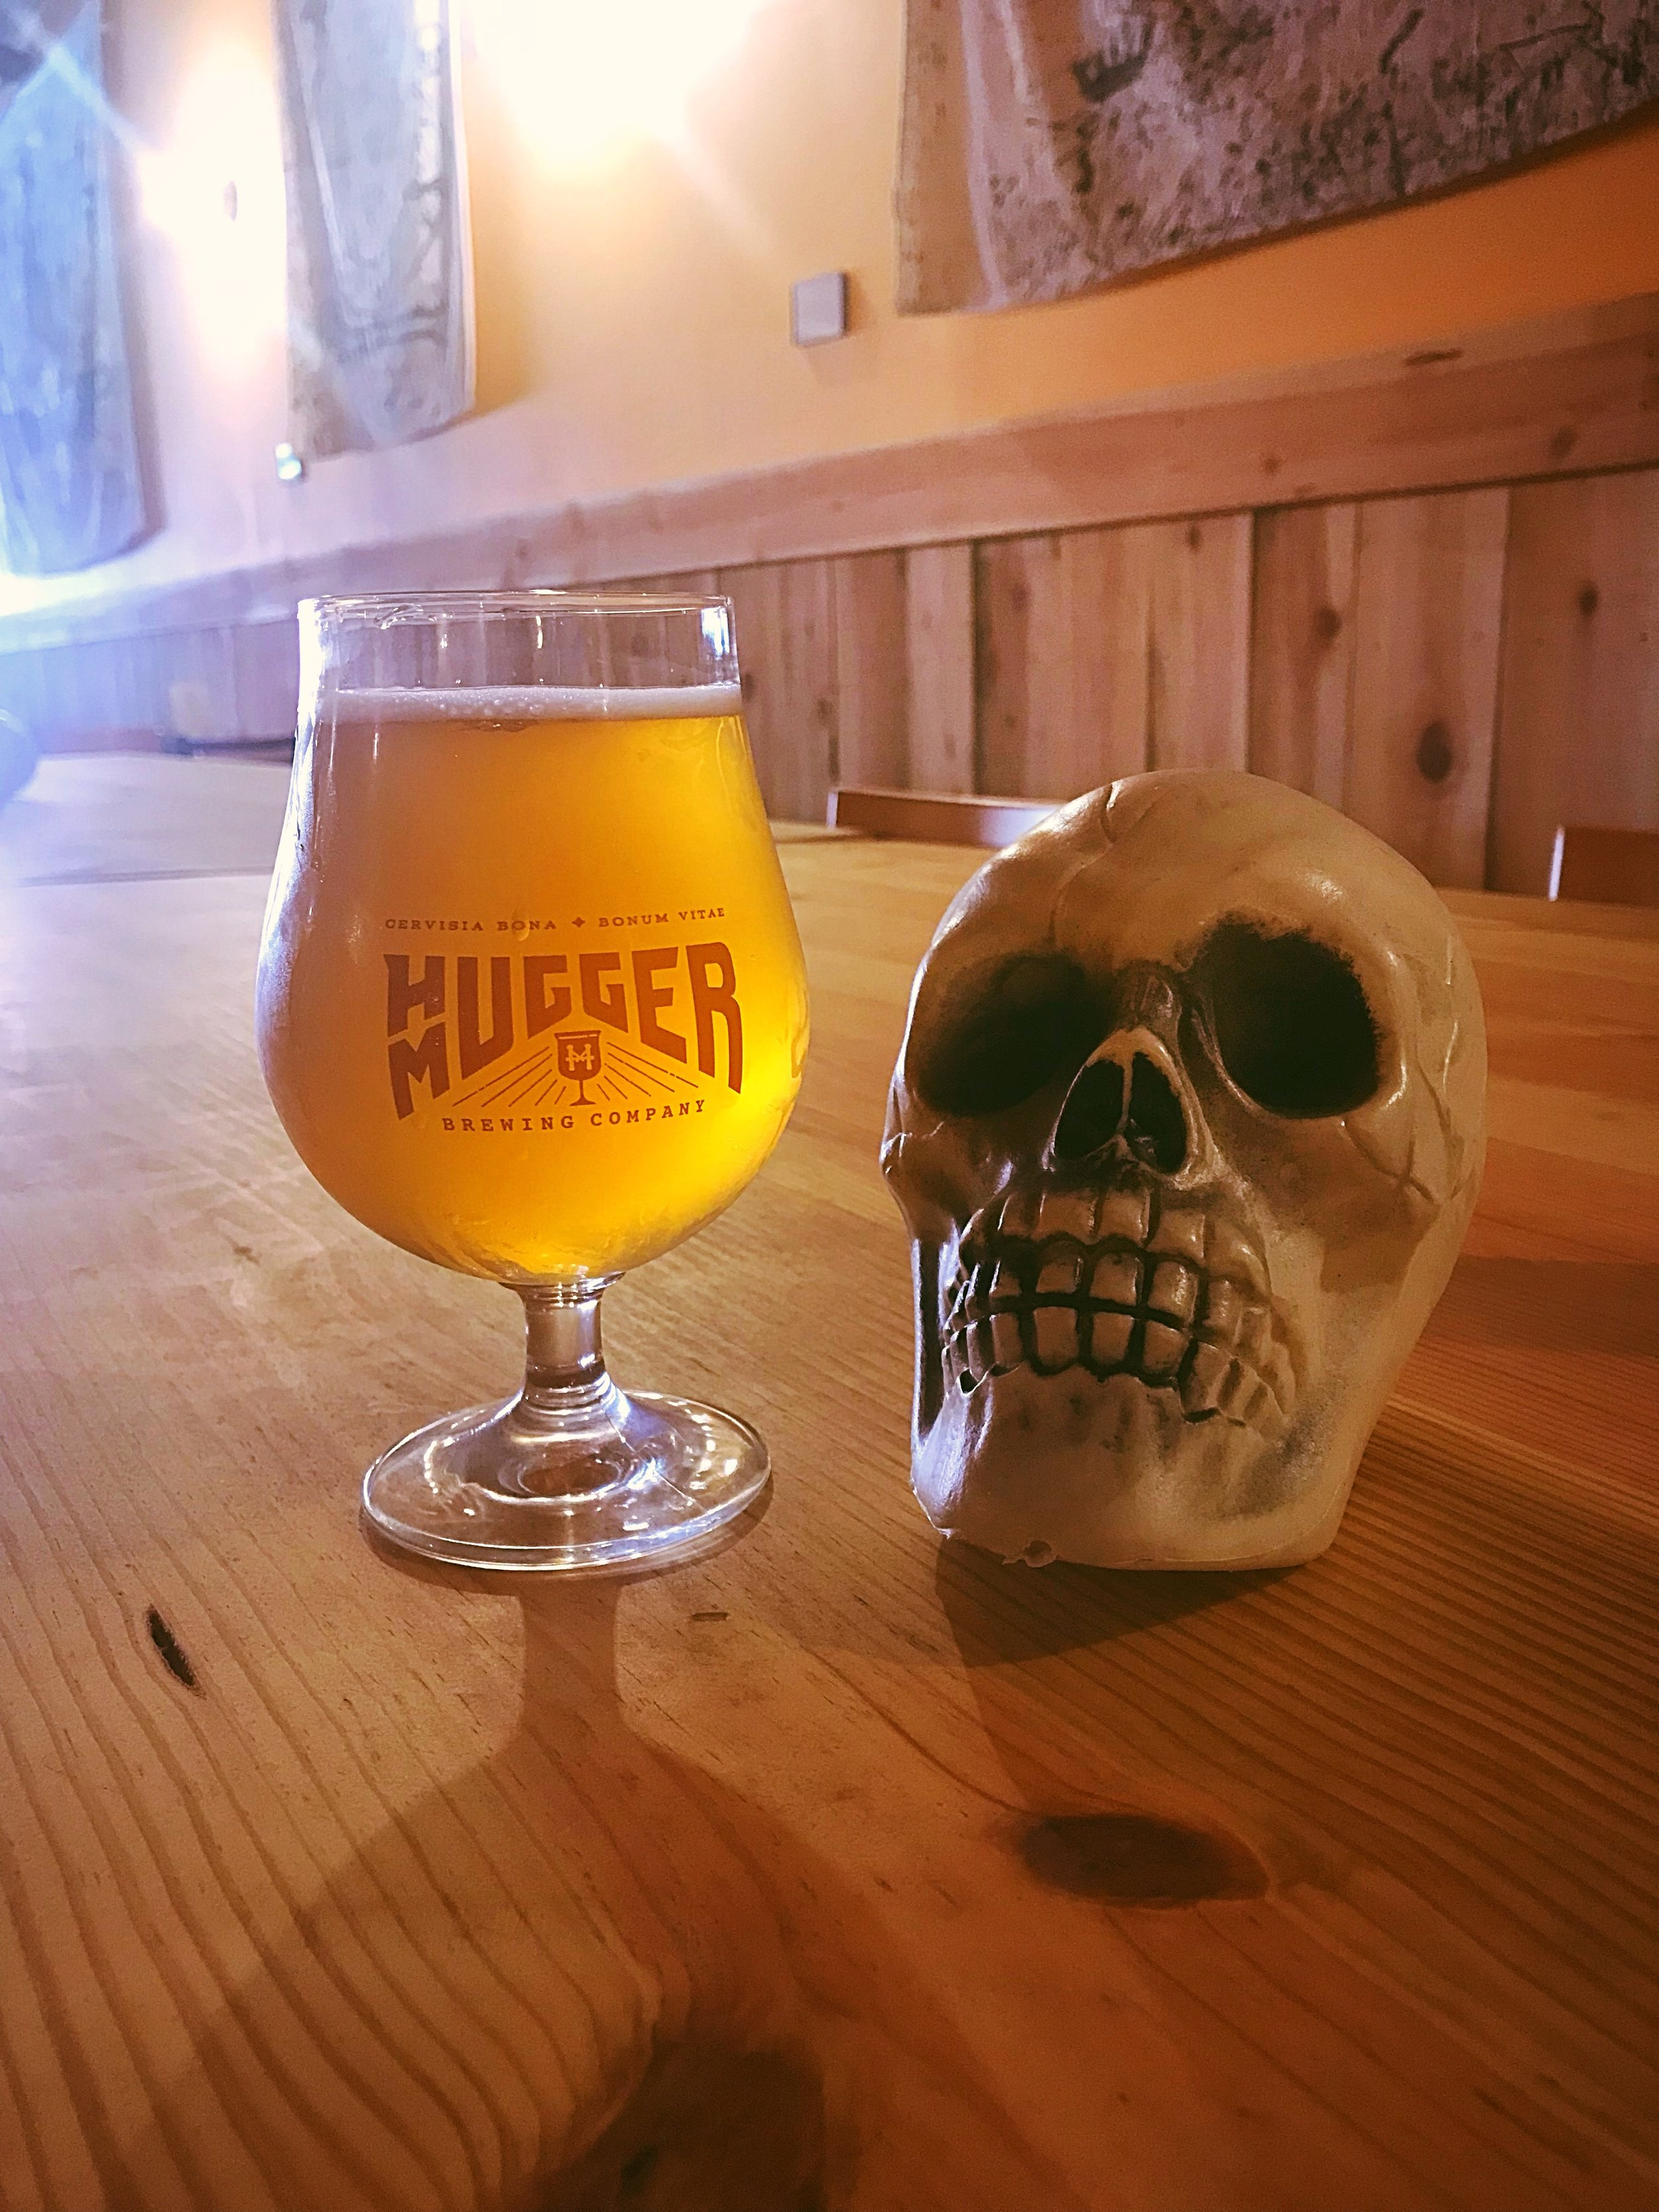 """- Hastur """"The King in Yellow"""" Belgian Tripel 9% ABV 20 IBUNamed after the half brother of the fabled Cthulu, Hastur influences the creative mind from afar. This 9% peppery and spiced Belgian Tripel will deceive in strength. Pale yellow in color and dry on the palate this quaff demon will sneak up on you."""